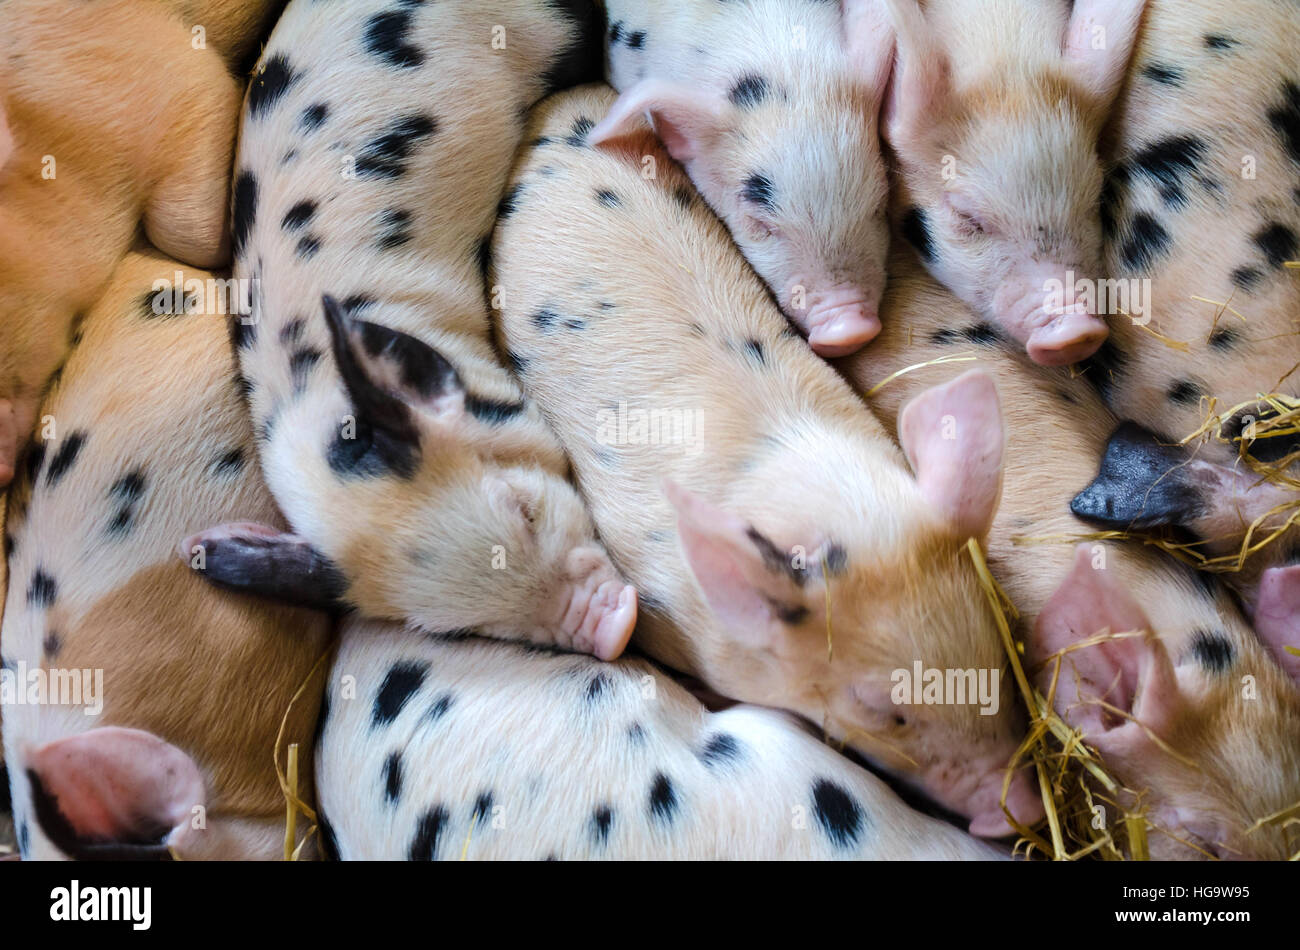 gloucester-old-spot-piglets-snuggle-up-together-in-a-barn-HG9W95.jpg